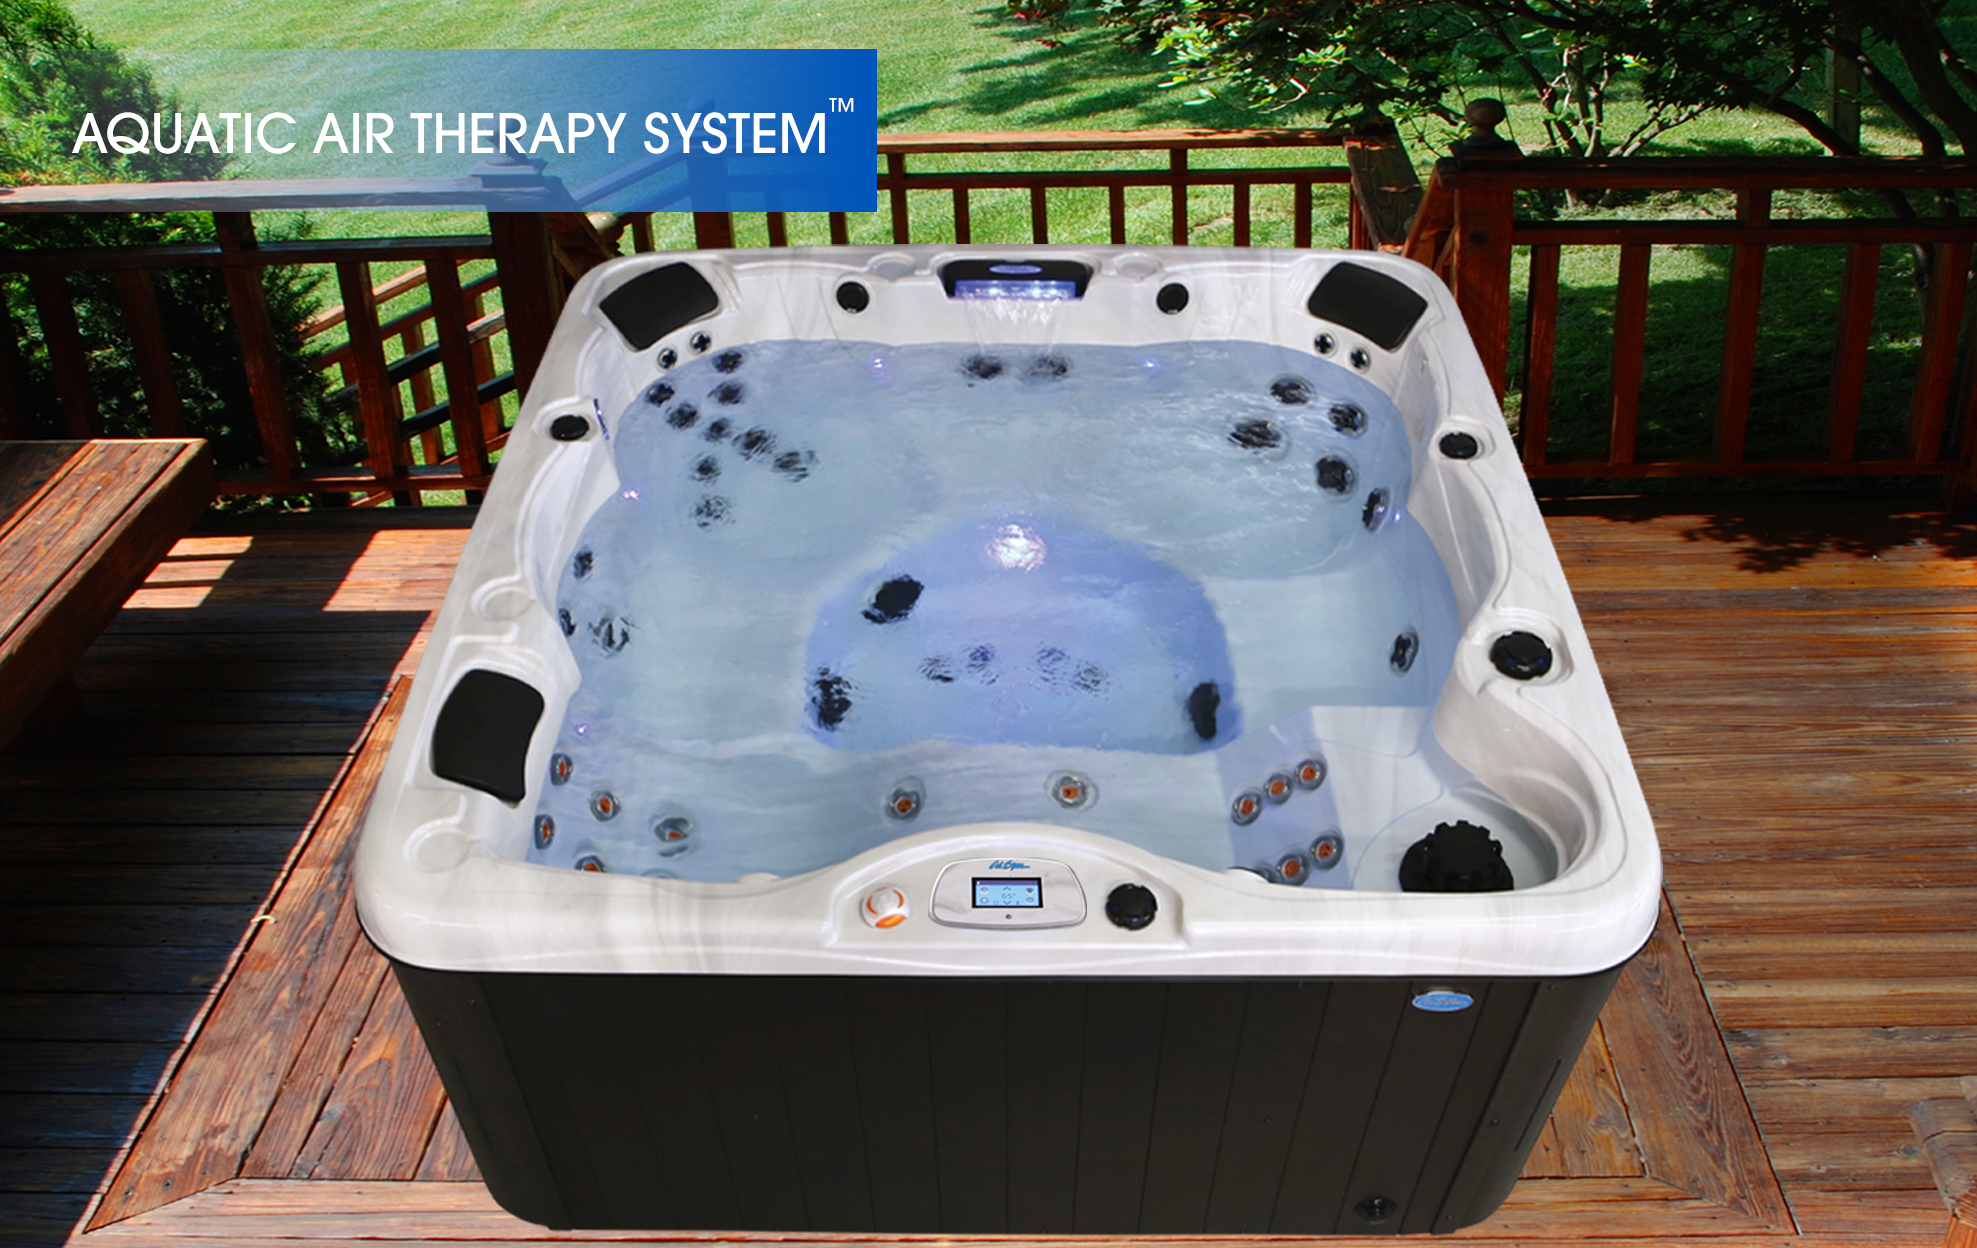 Cal Spas Aquatic Air Therapy